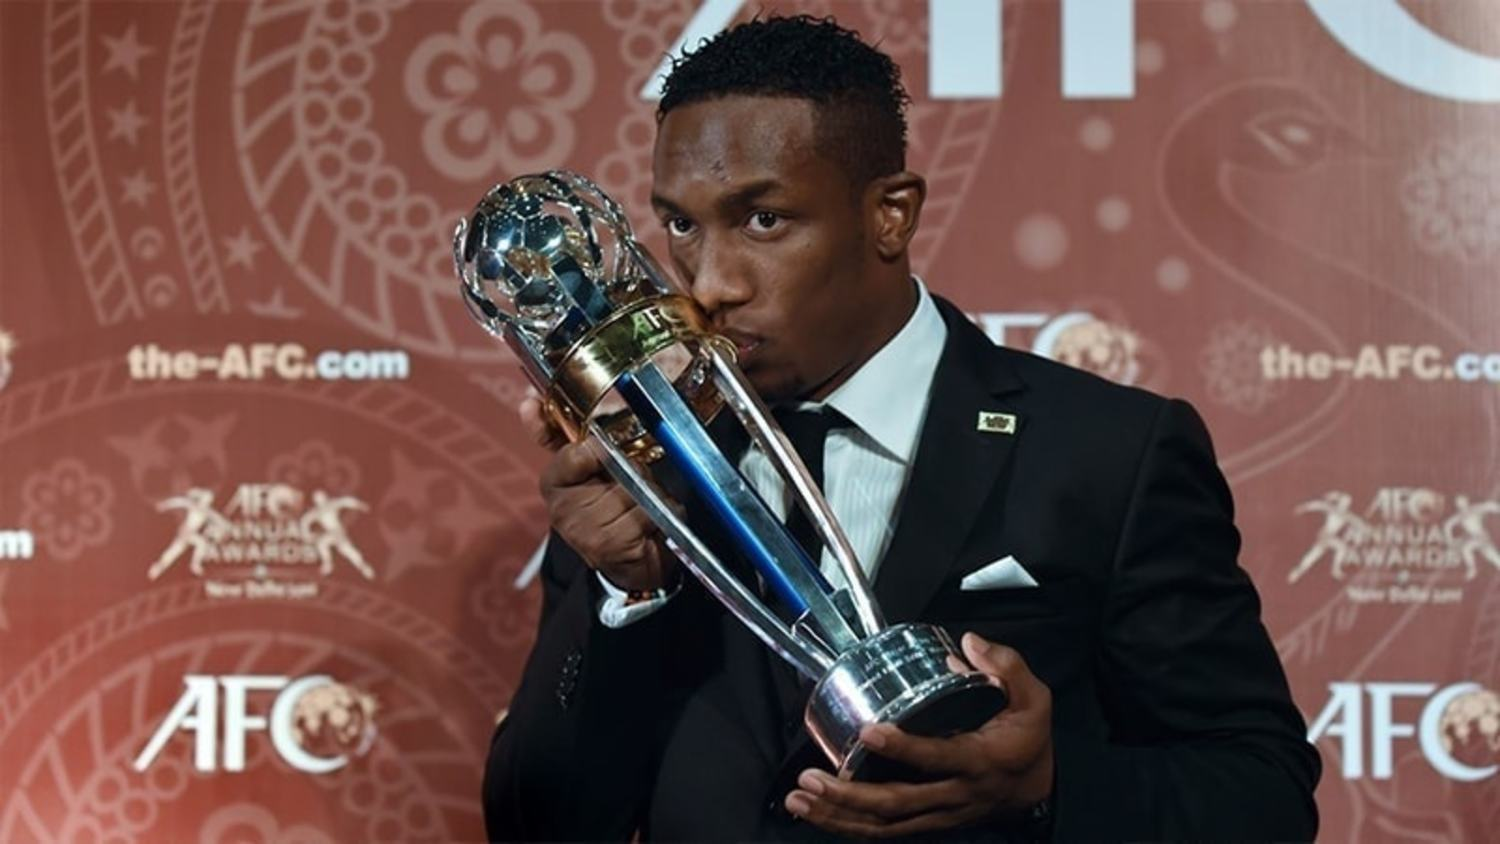 Ahmed Khalil named as Asian Player of the Year